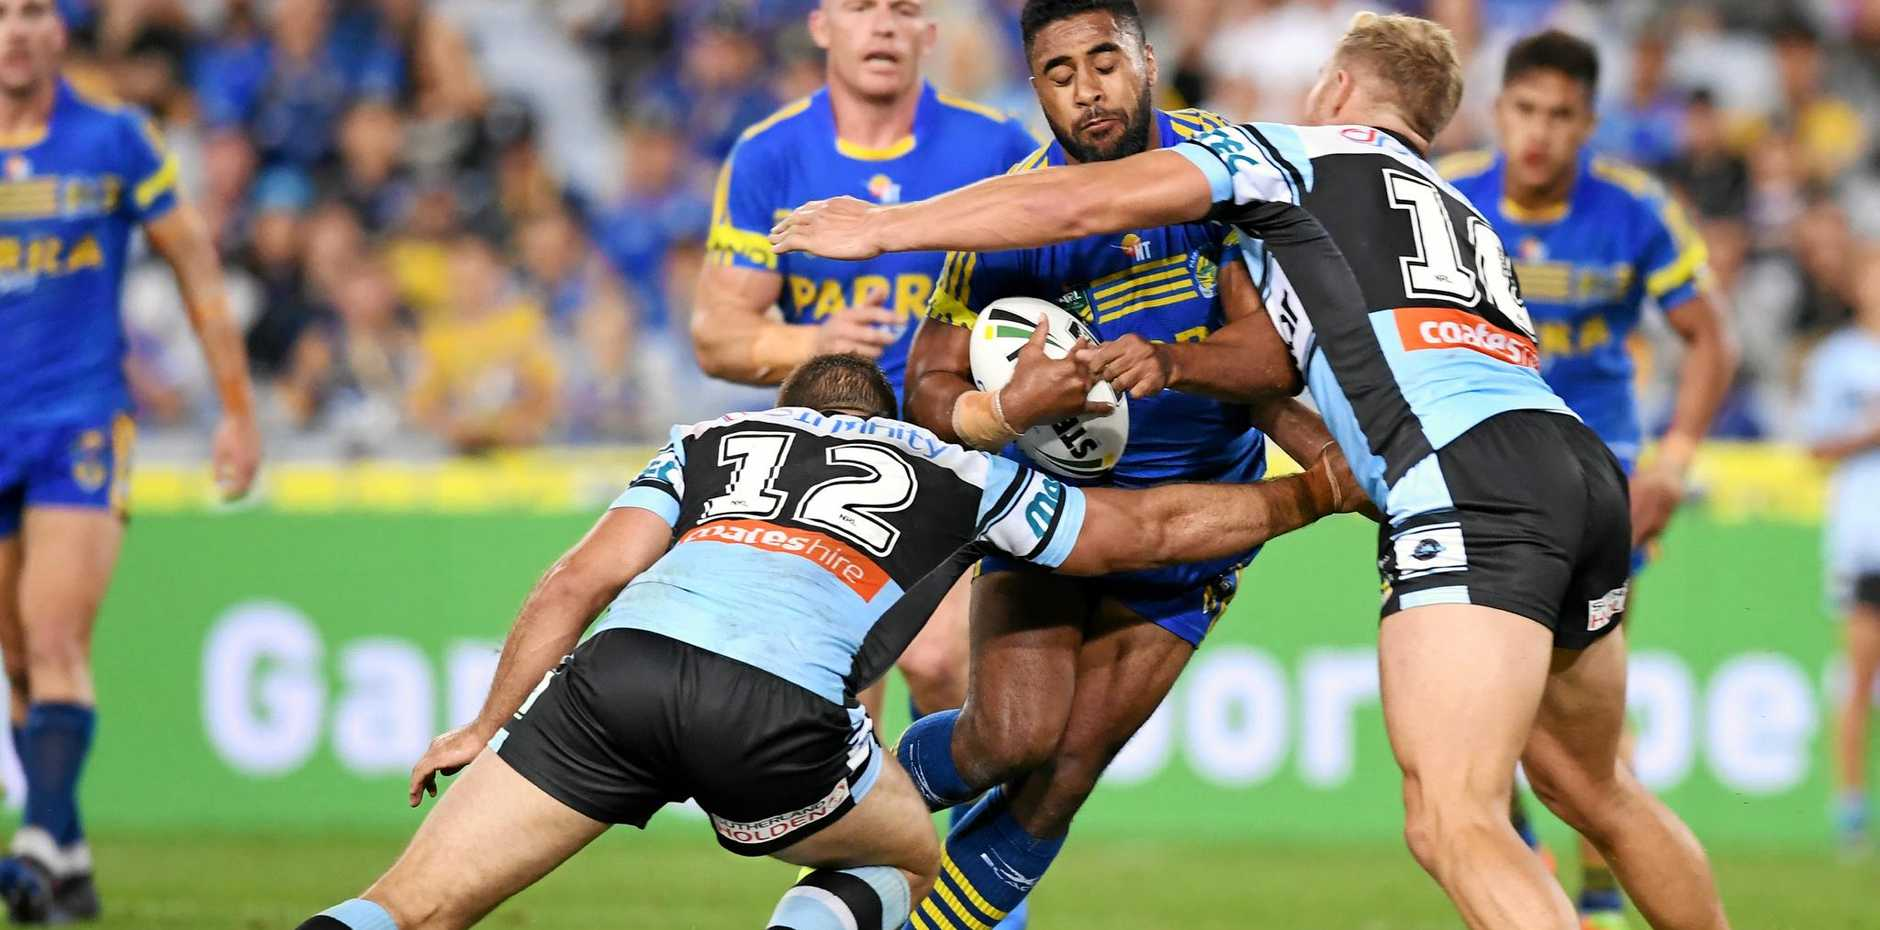 Michael Jennings (centre) of the Eels is tackled by Matt Prior (right) and Wade Graham of the Sharks.